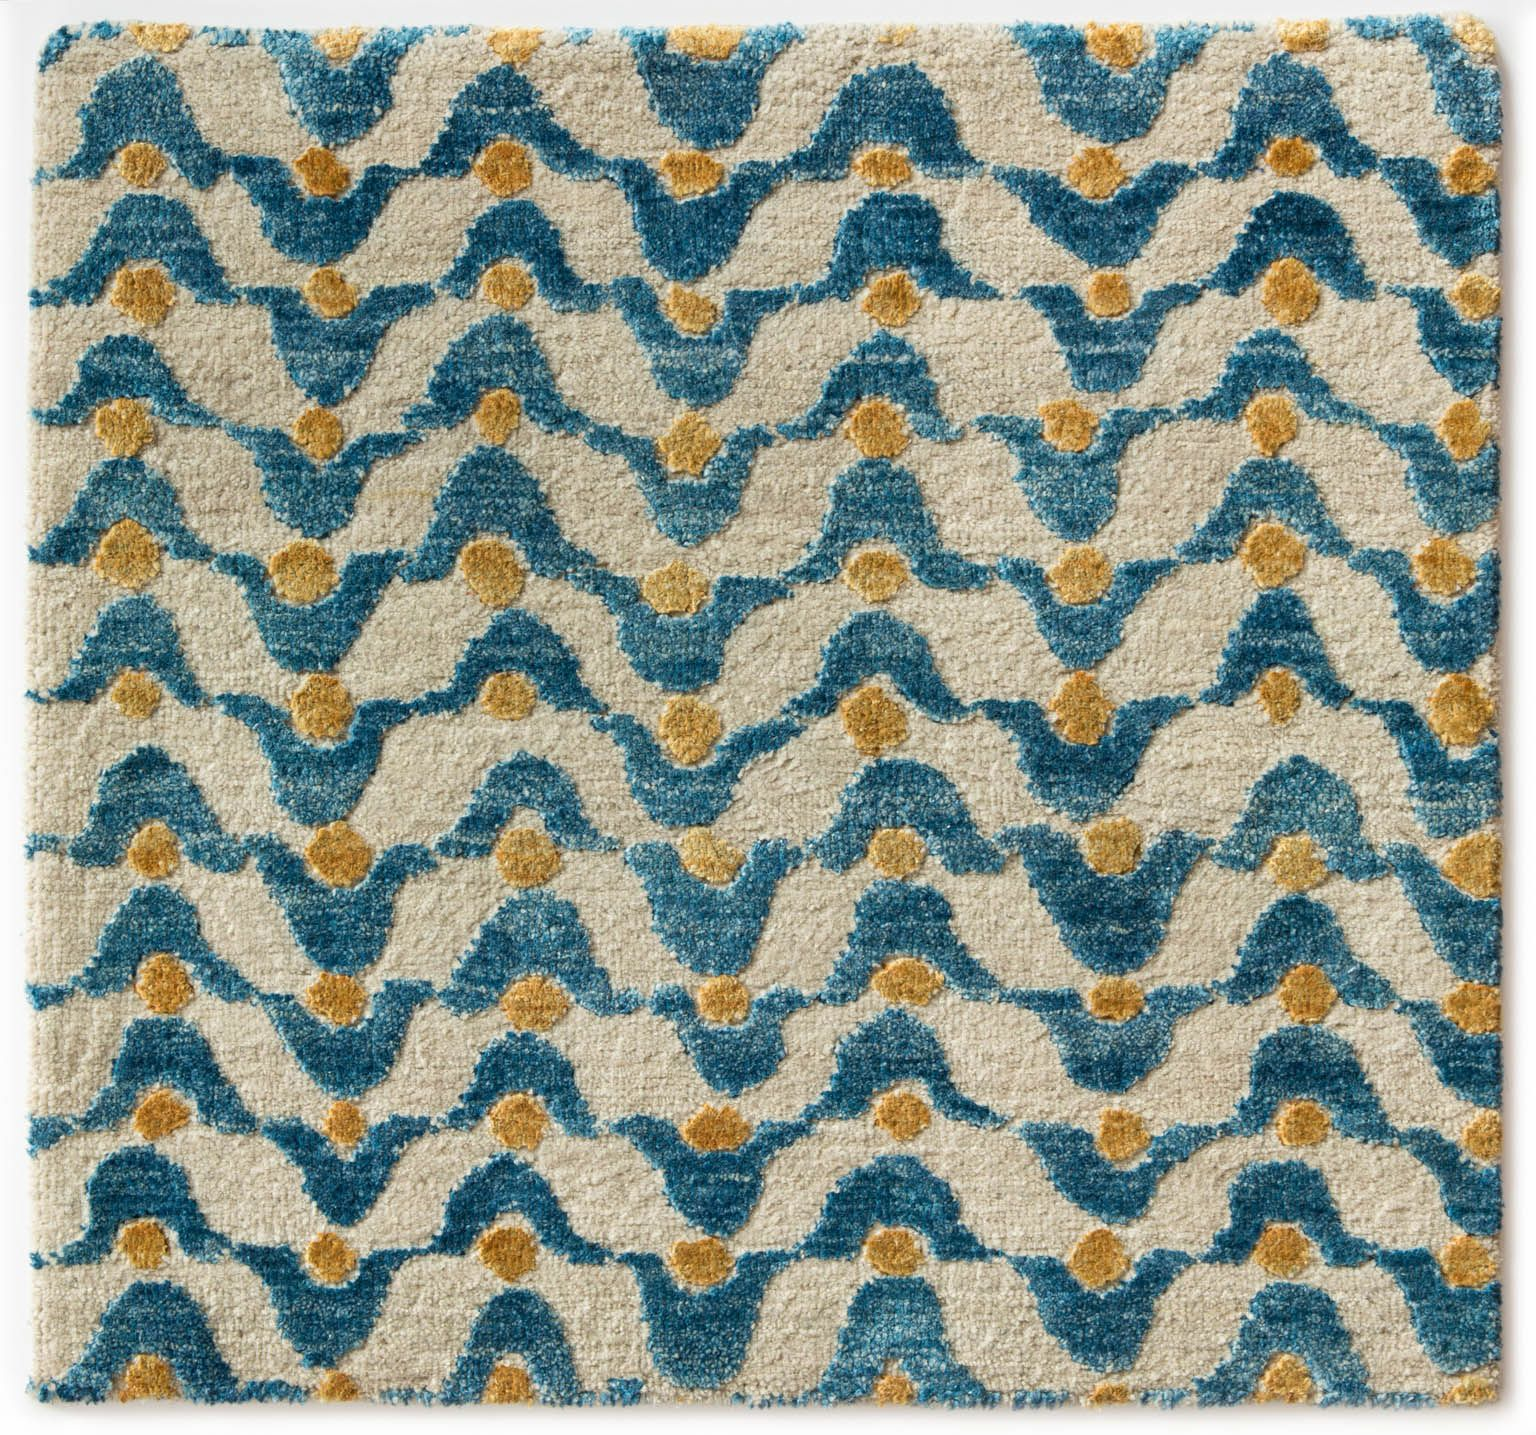 rugs holland sherry patterns textiles pinterest holland